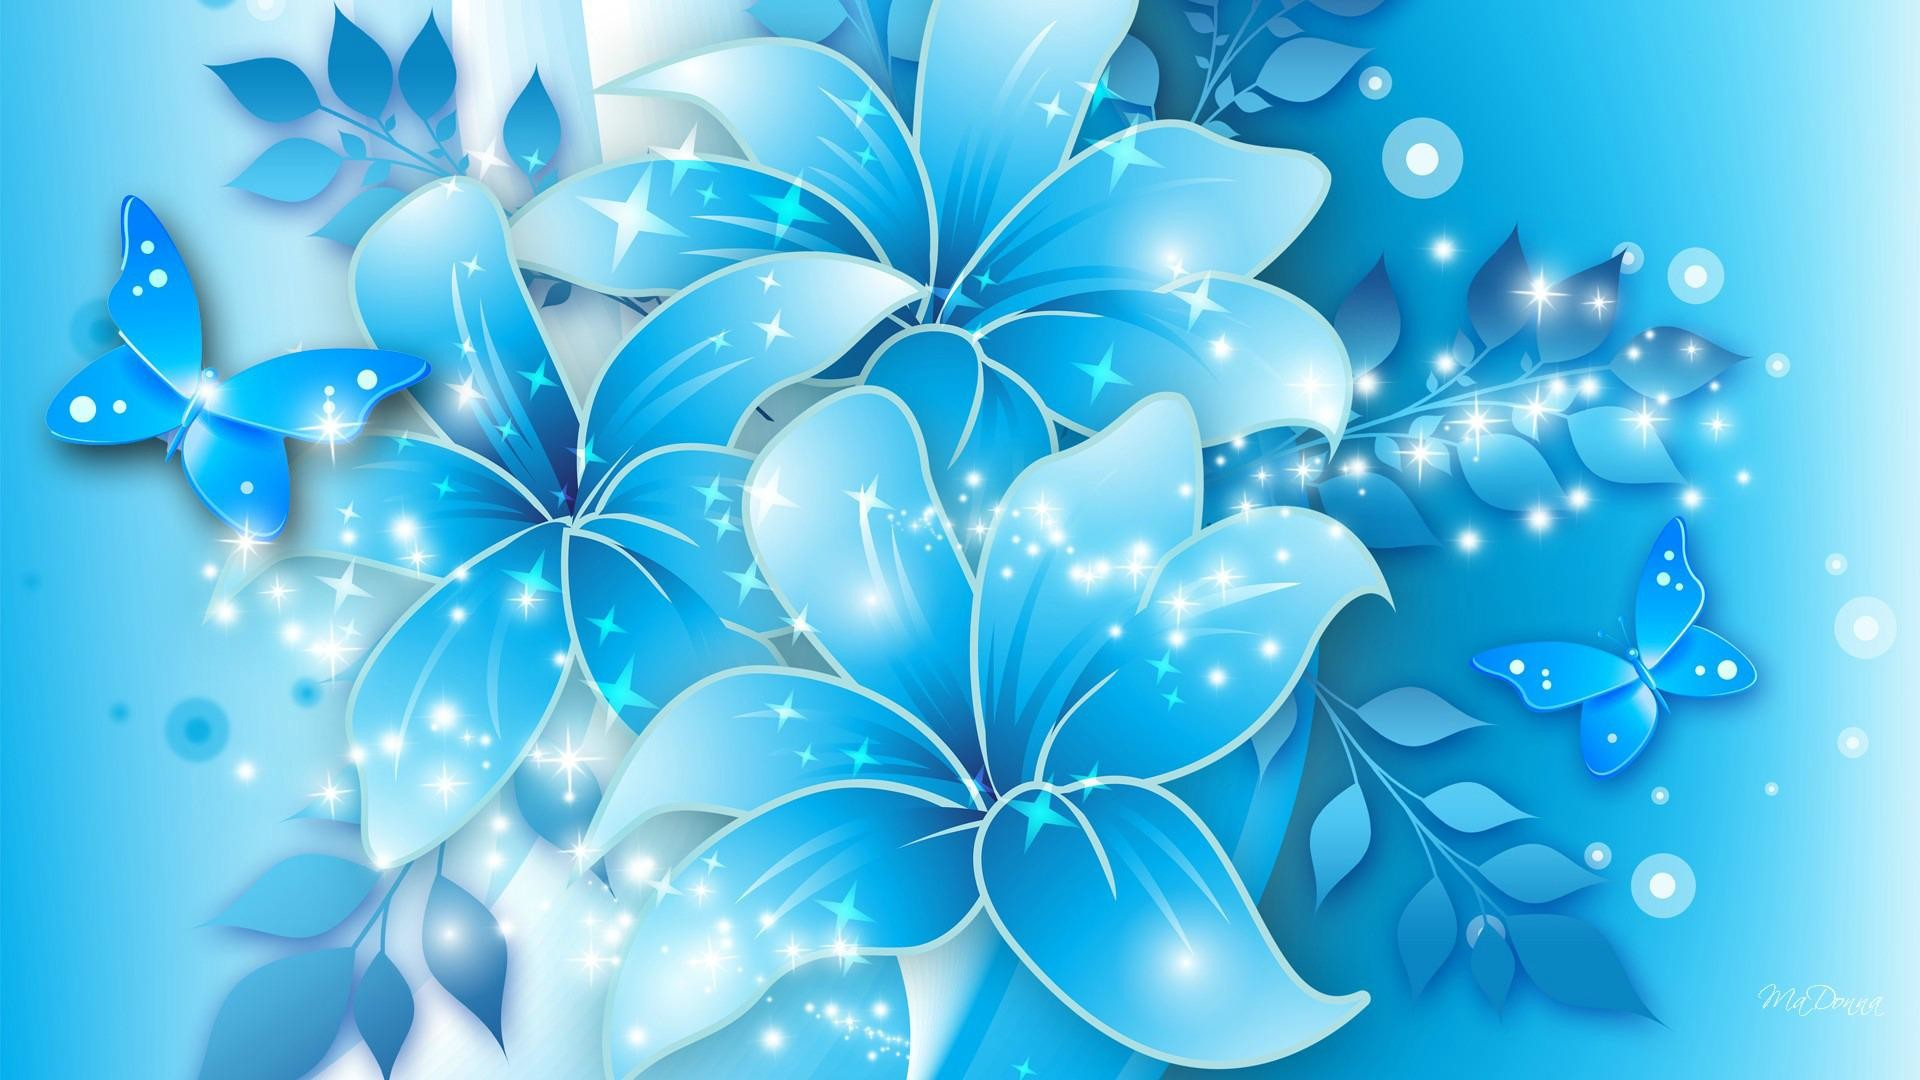 Res: 1920x1080, Blue Flower Wallpaper High Resolution